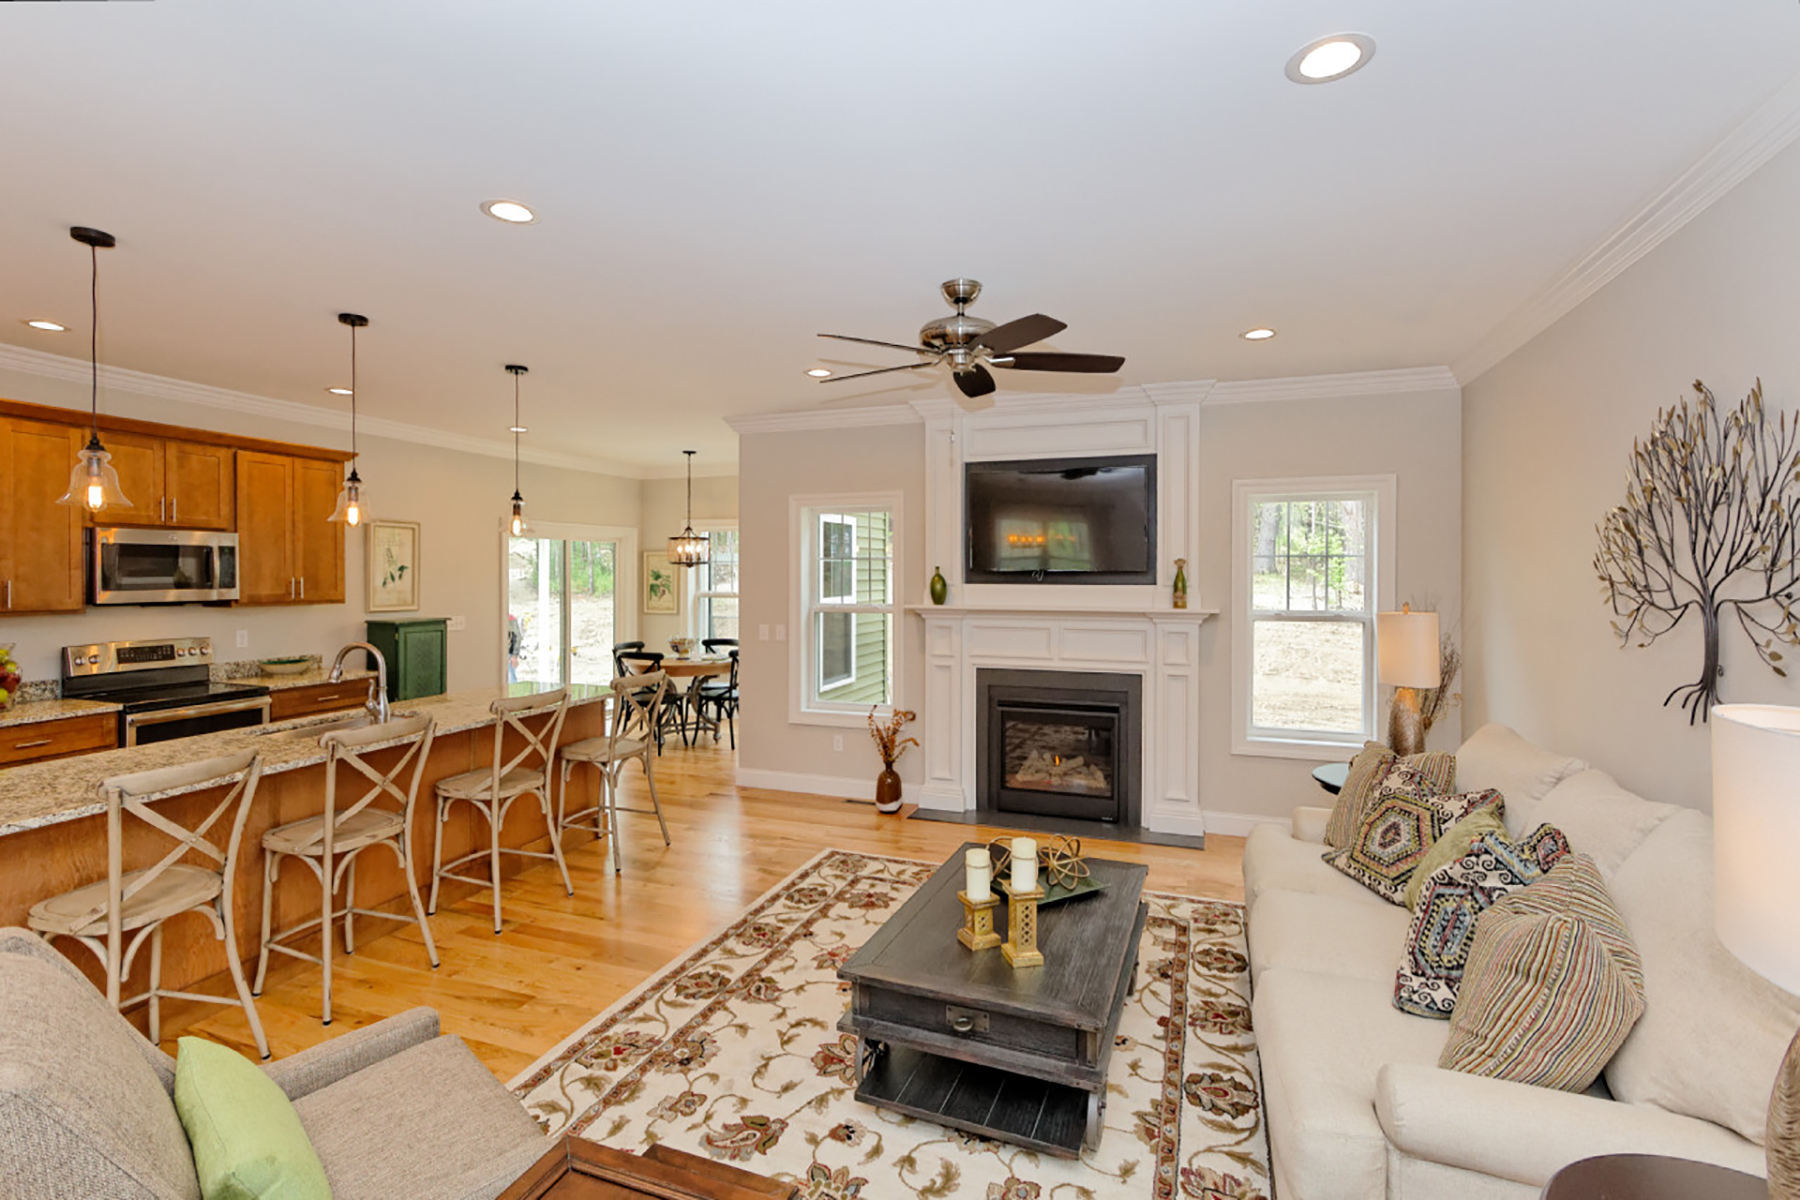 Single Family Home for Sale at Build Your Dream Home in Schuyler Hills! Lot 24 Schuyler Hills Dr Saratoga Springs, New York 12866 United States